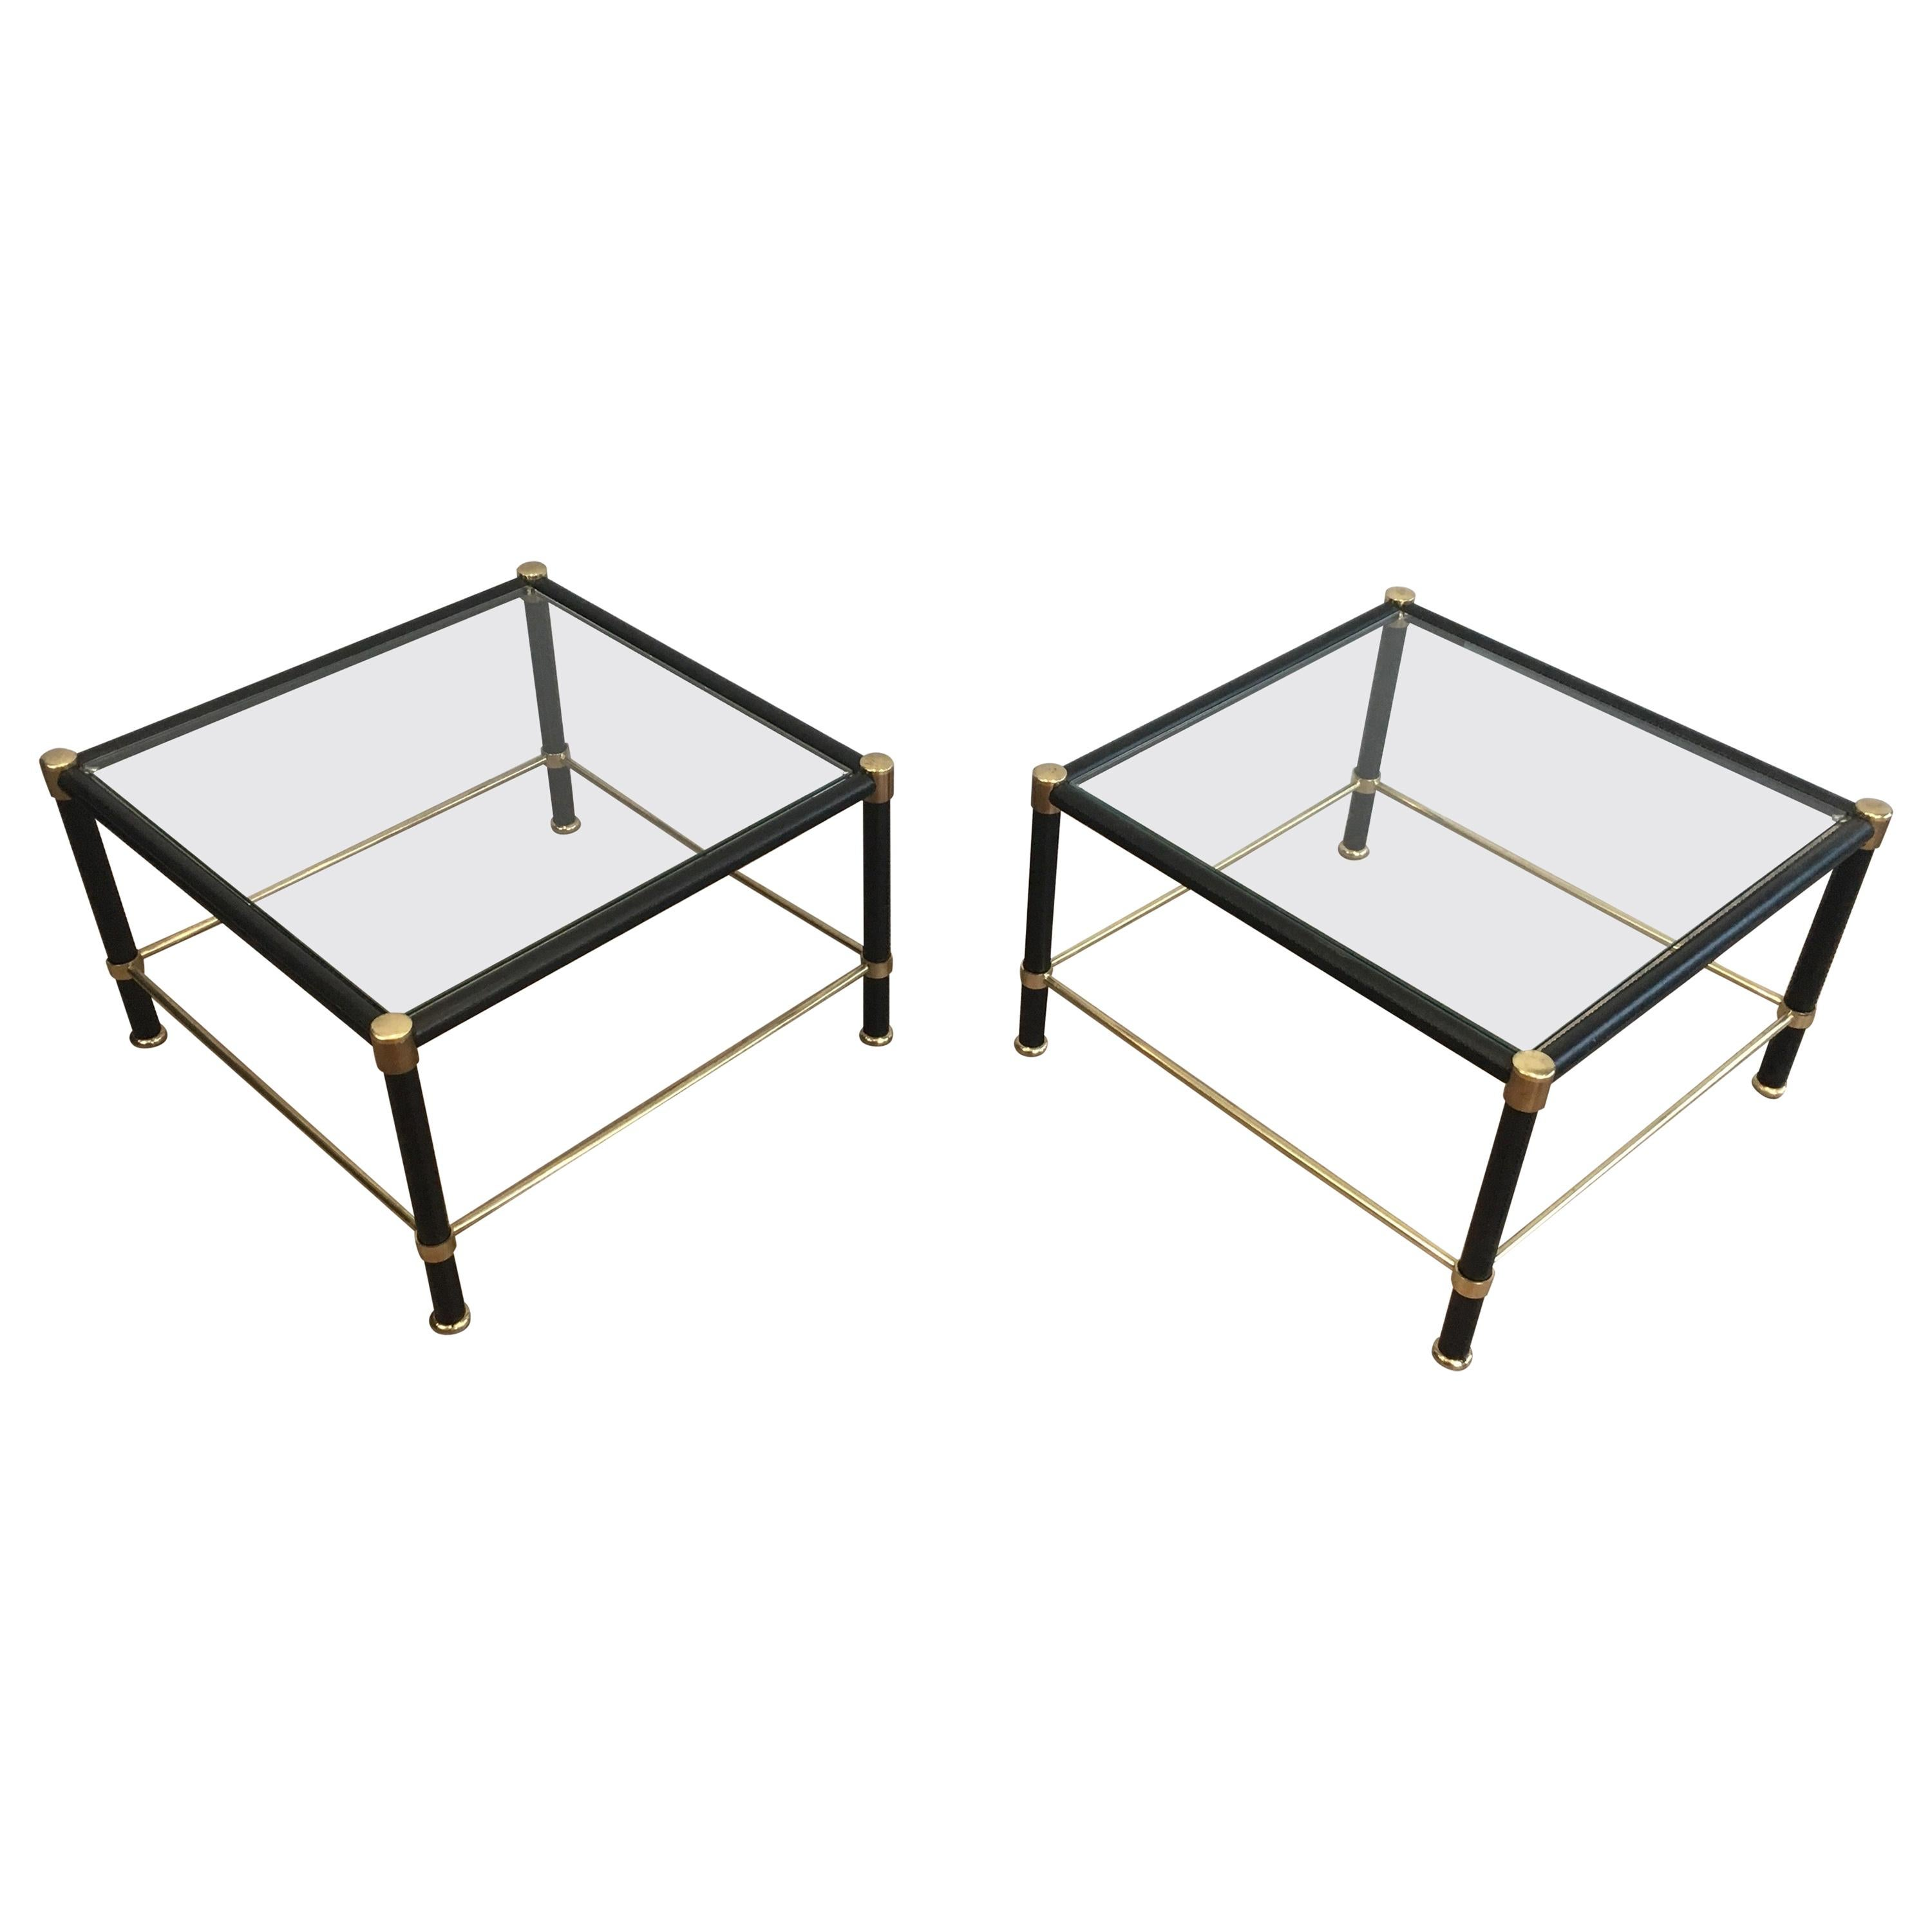 In the Style of Jacques Adnet, Pair of Brass and Black Leather Square Side